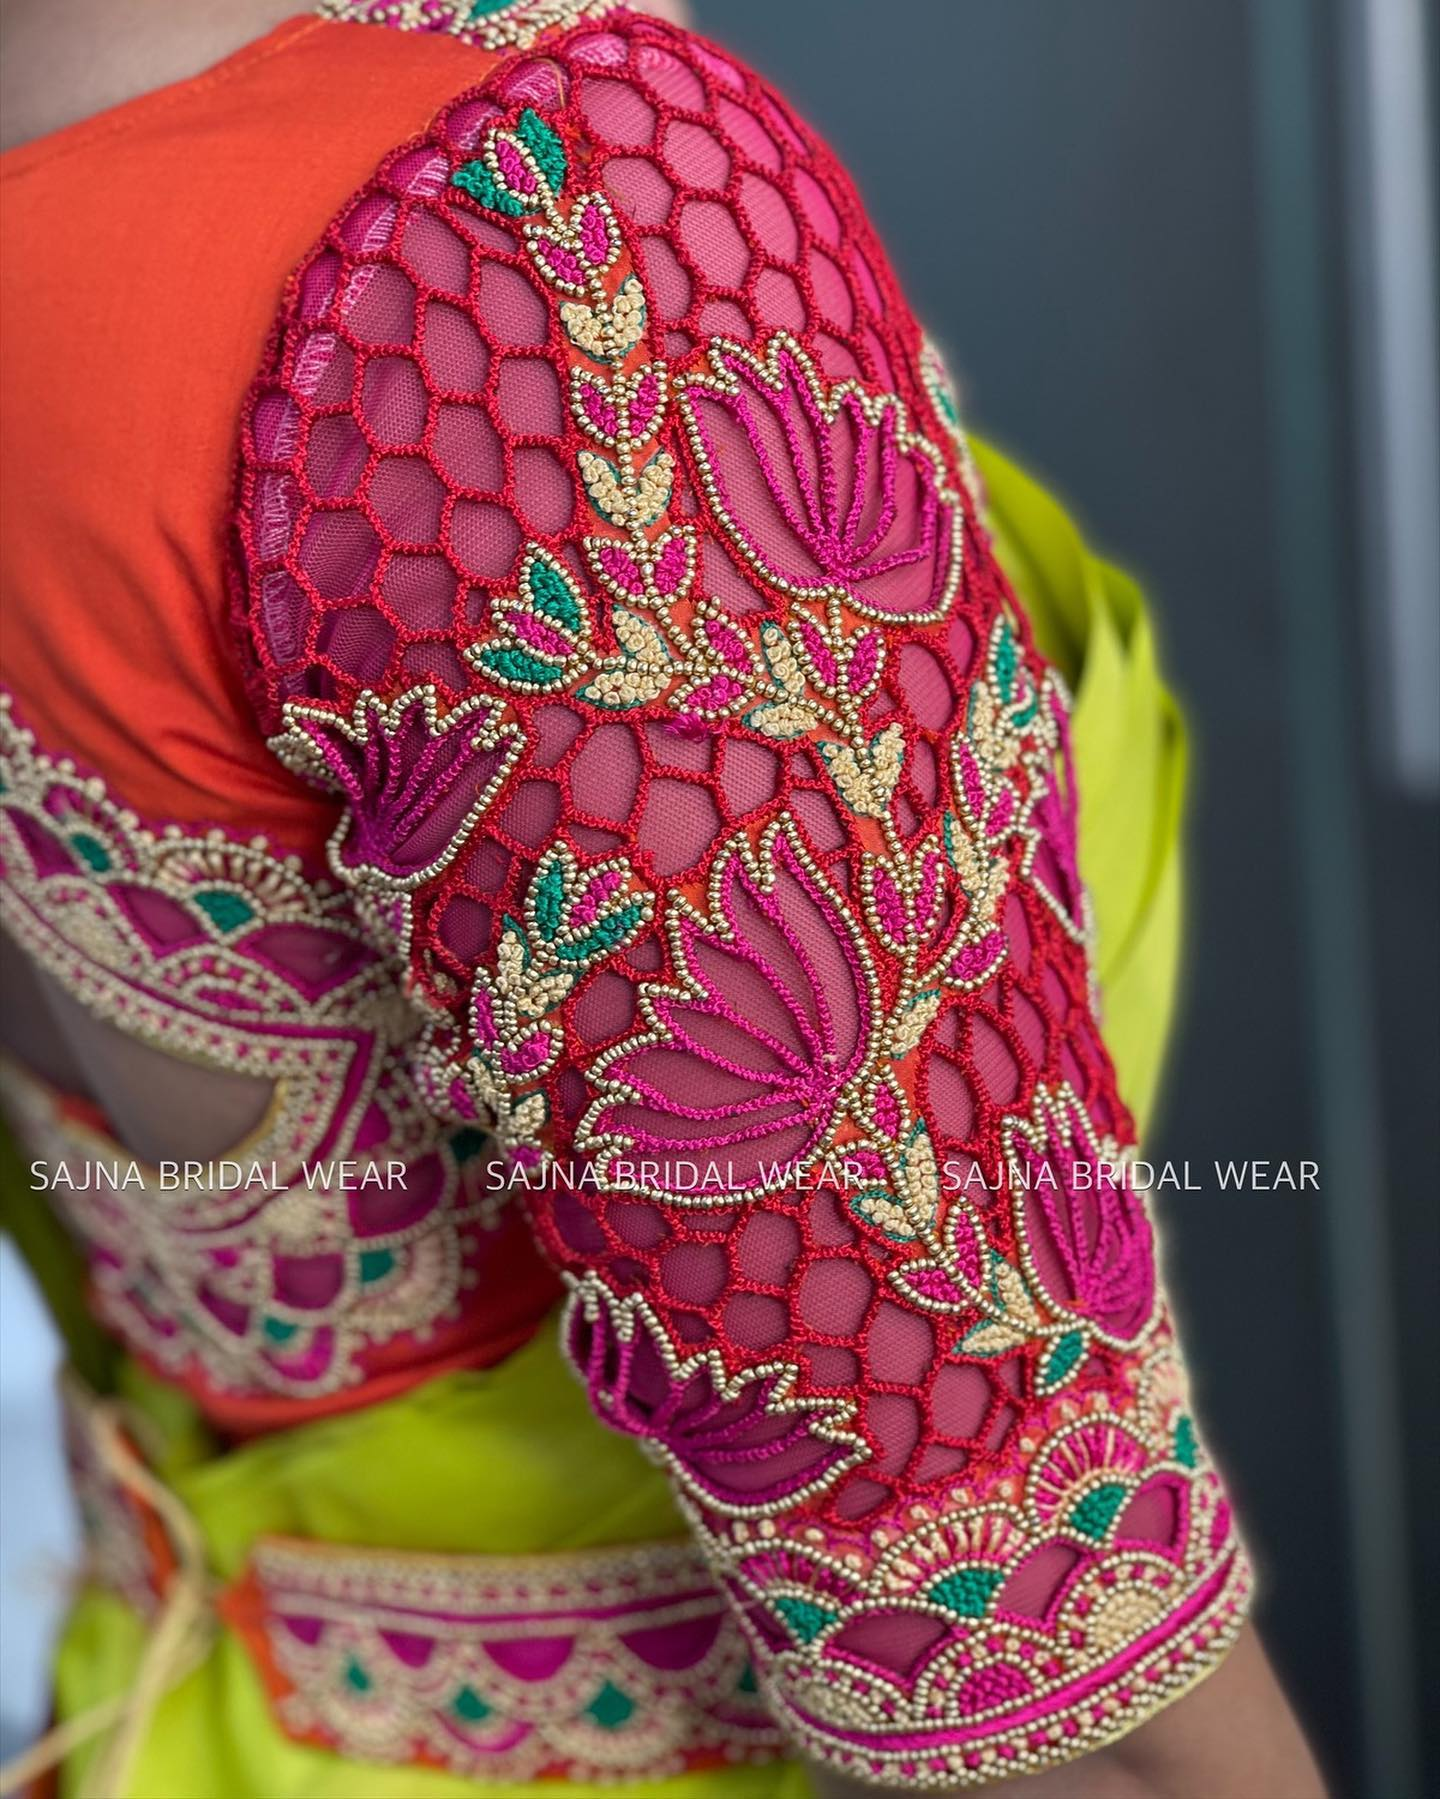 Cut work blouse with cut work waist belt. Stunning pink and orange color combination blouse design with lotus flower hand embroidery cut work on sleeves.  2021-06-10